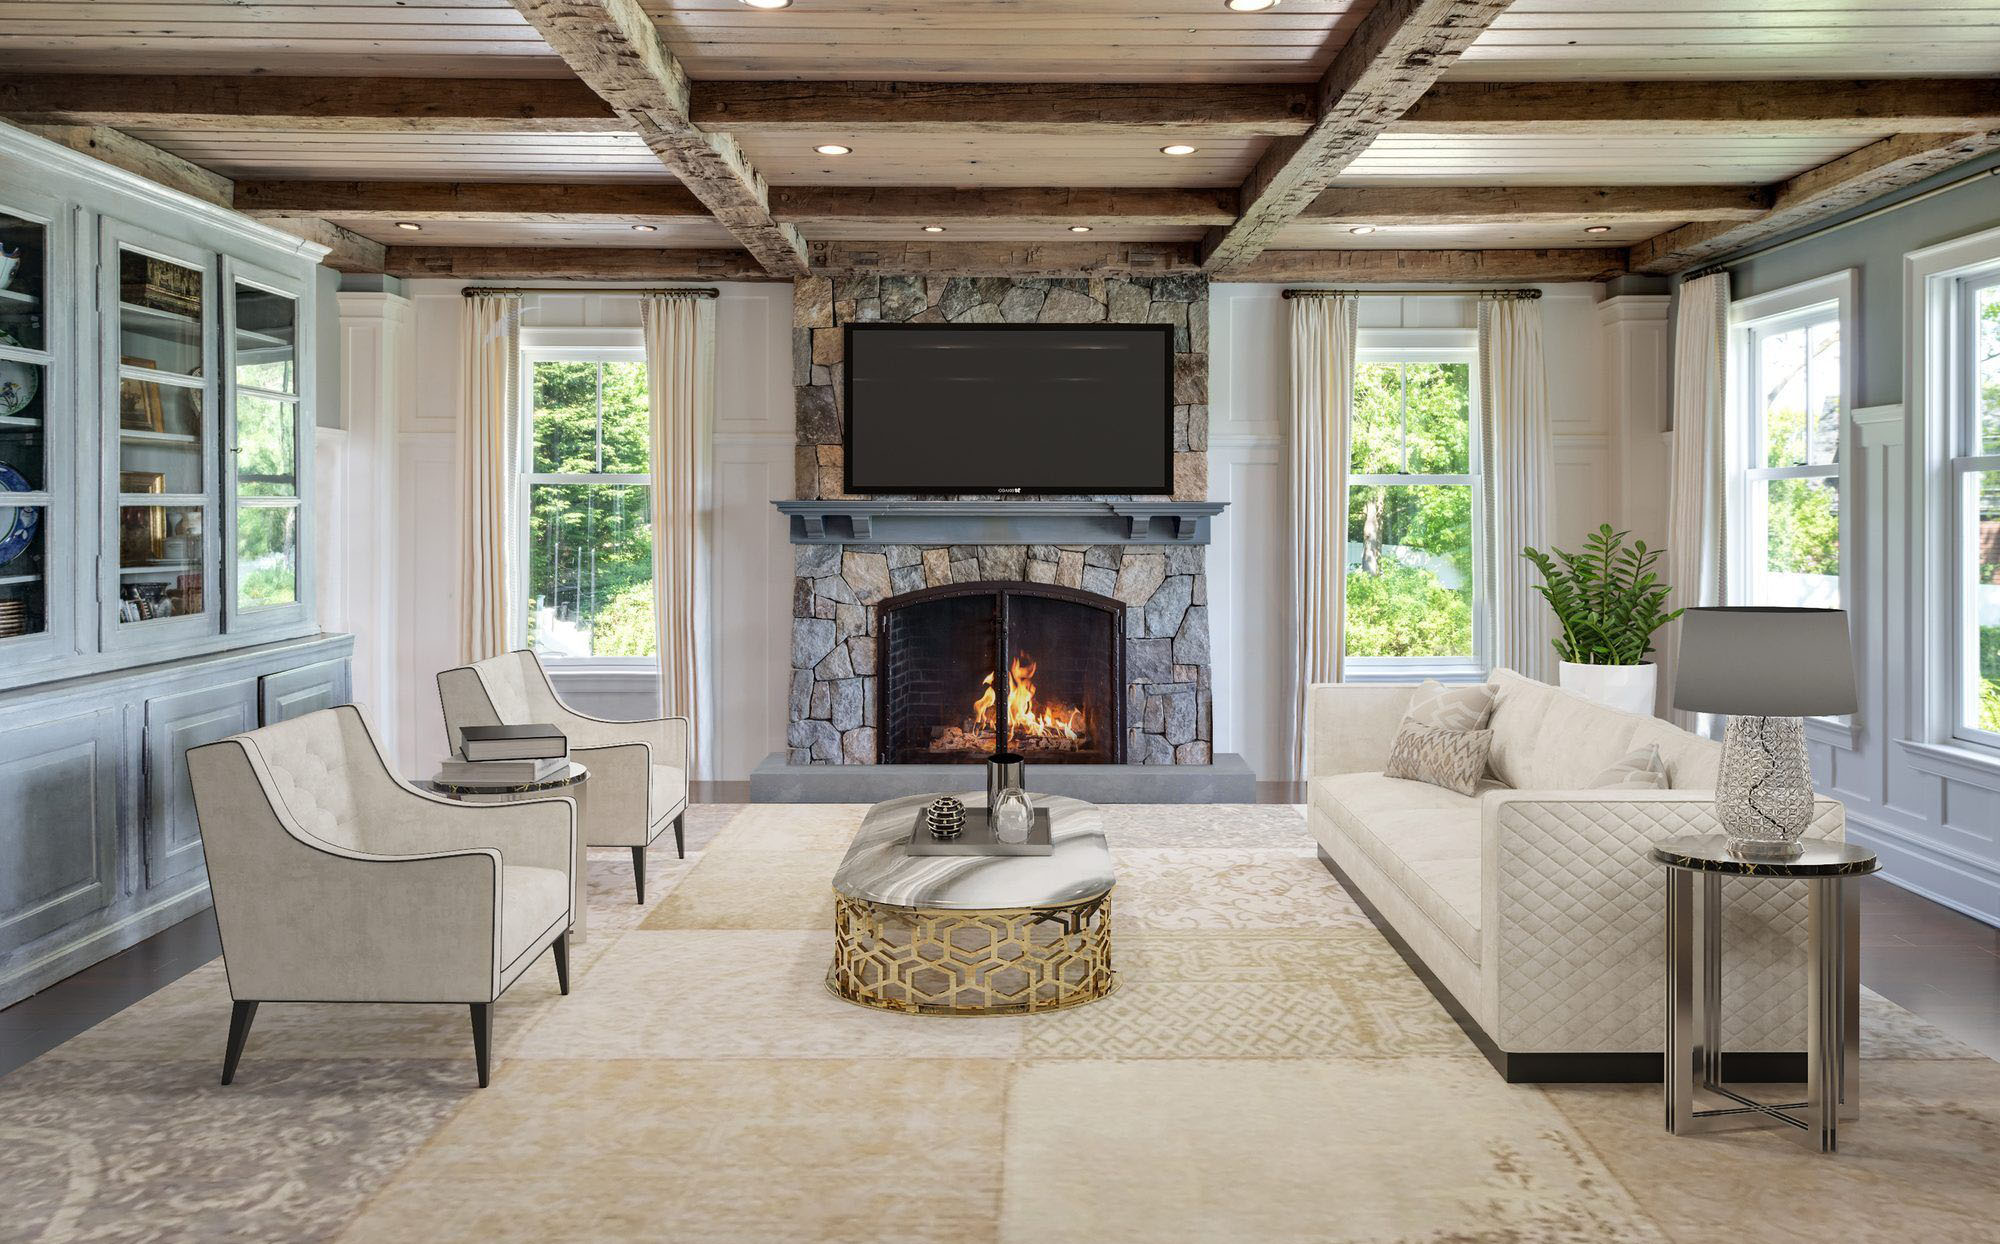 Real stone veneer fireplace surround with a cast concrete raised hearth. Painted gray wood shelf with mounted TV.